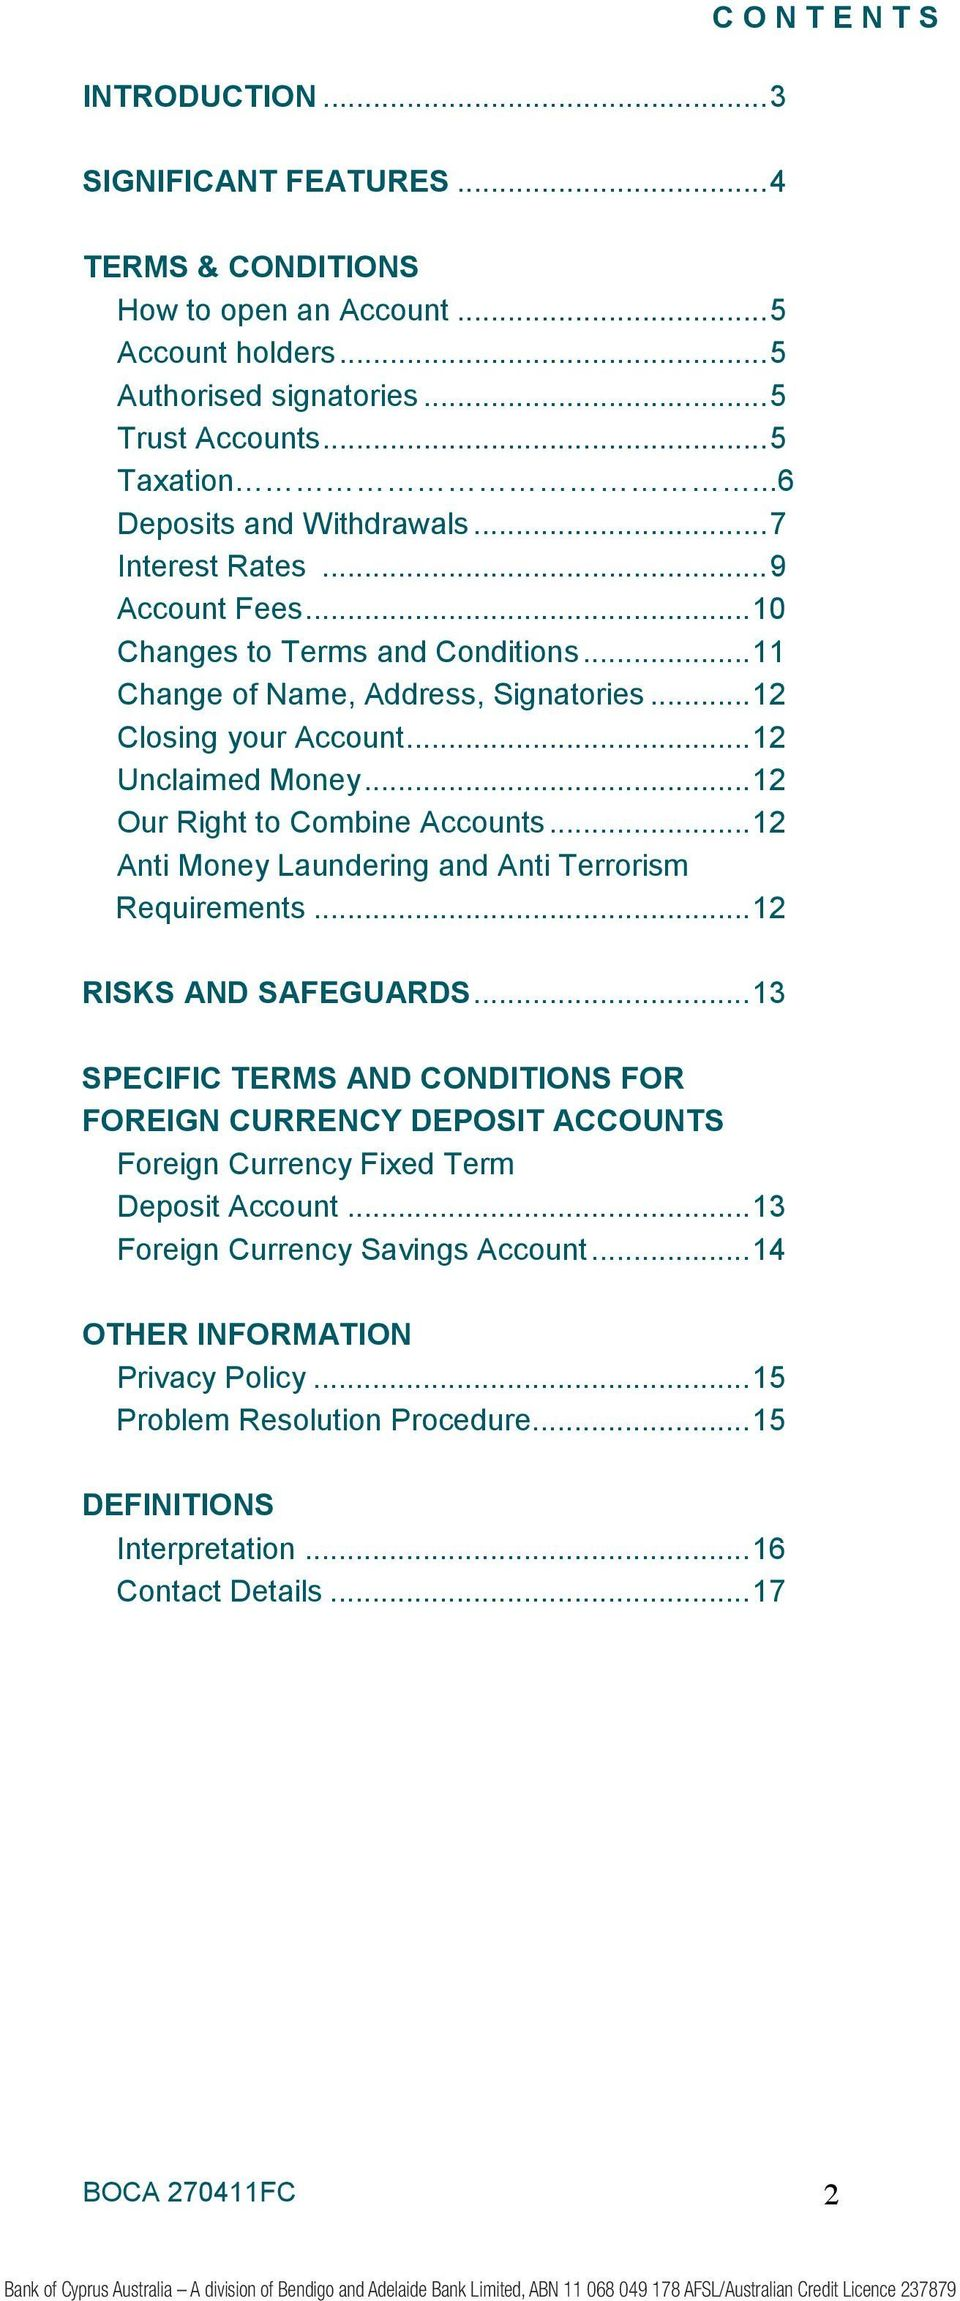 .. 12 Our Right to Combine Accounts... 12 Anti Money Laundering and Anti Terrorism Requirements... 12 RISKS AND SAFEGUARDS.